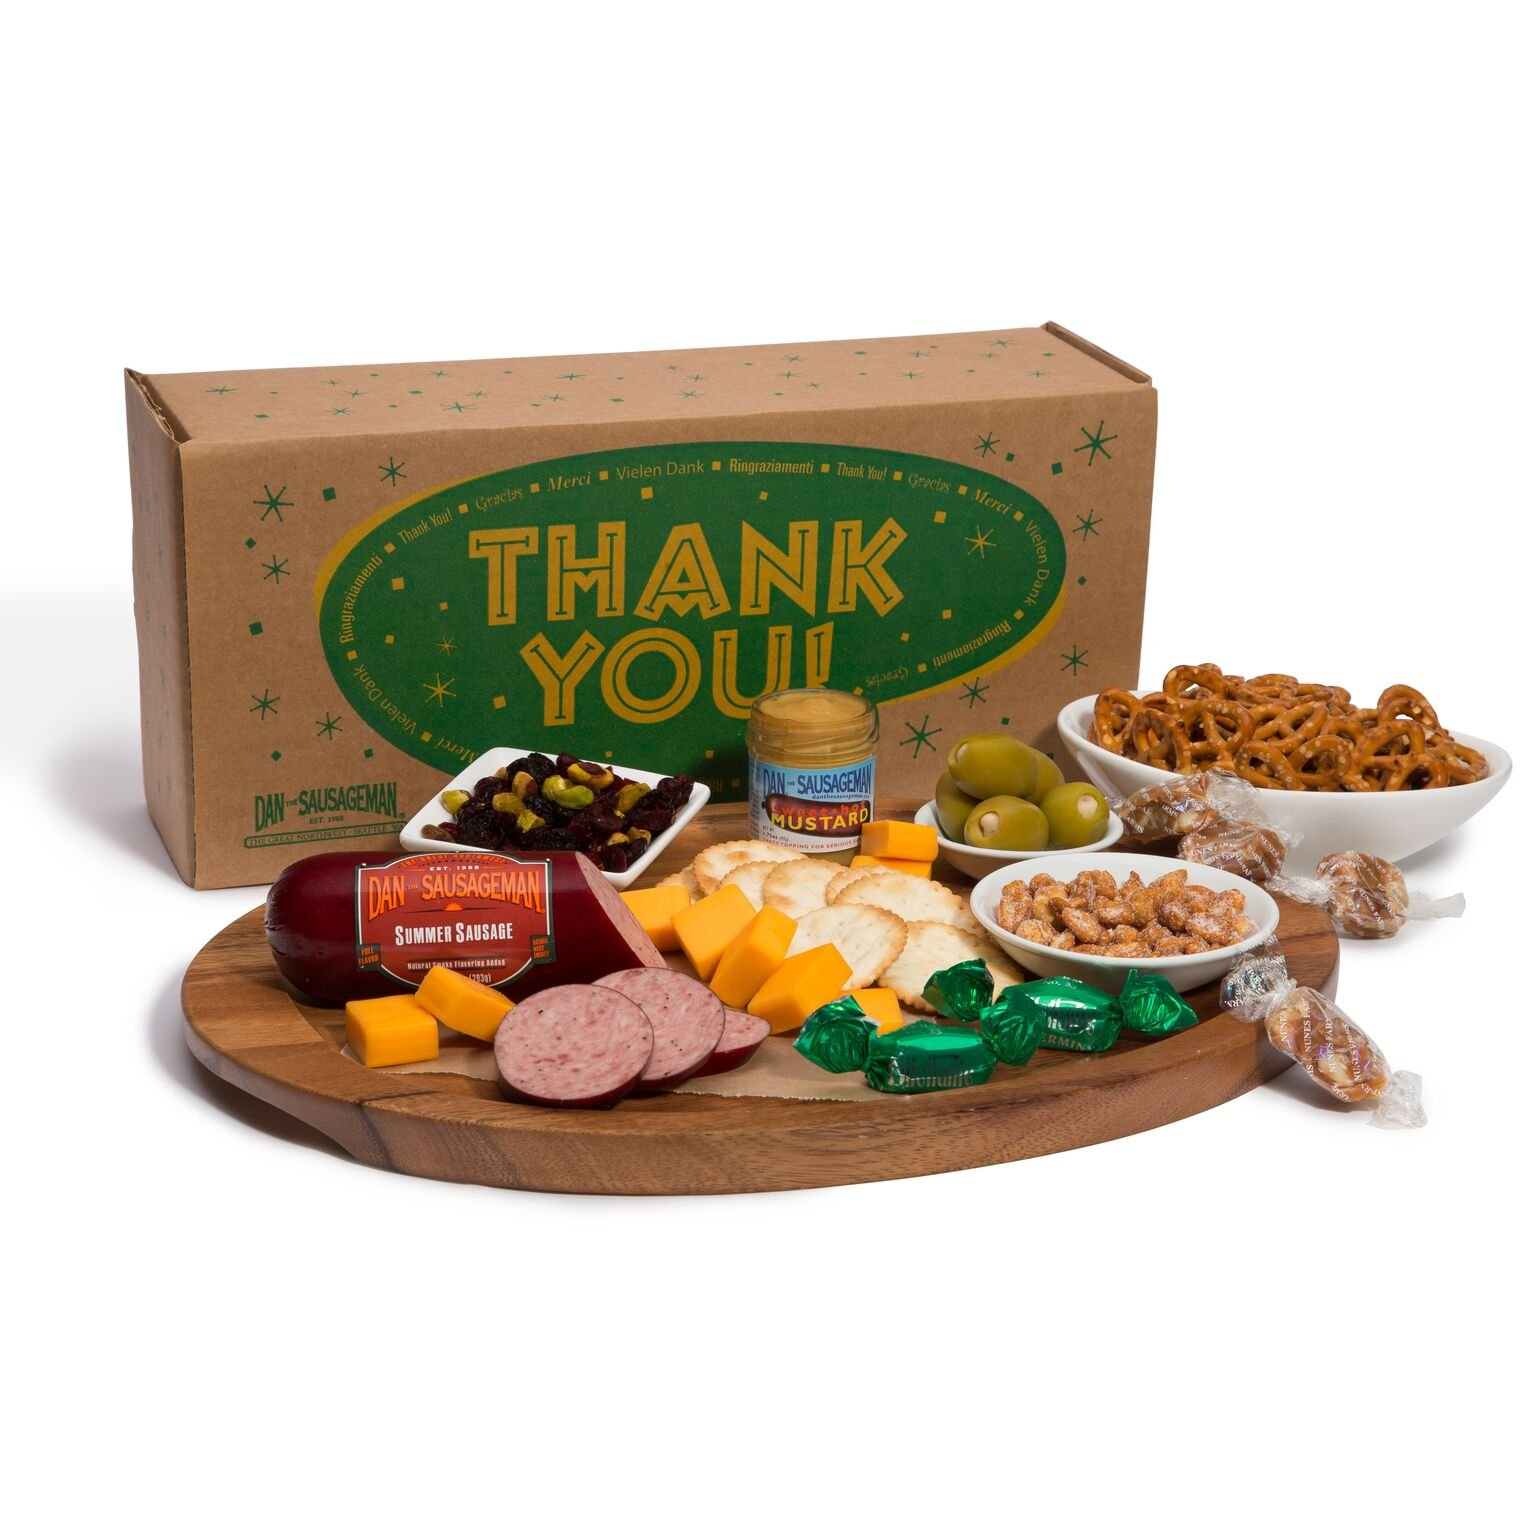 Dan the Sausageman's Thank You Gift Basket Featuring Summer Sausage, Wisconsin Cheese, Seattle Chocolates and Dan's Mustard. by Dan the Sausageman